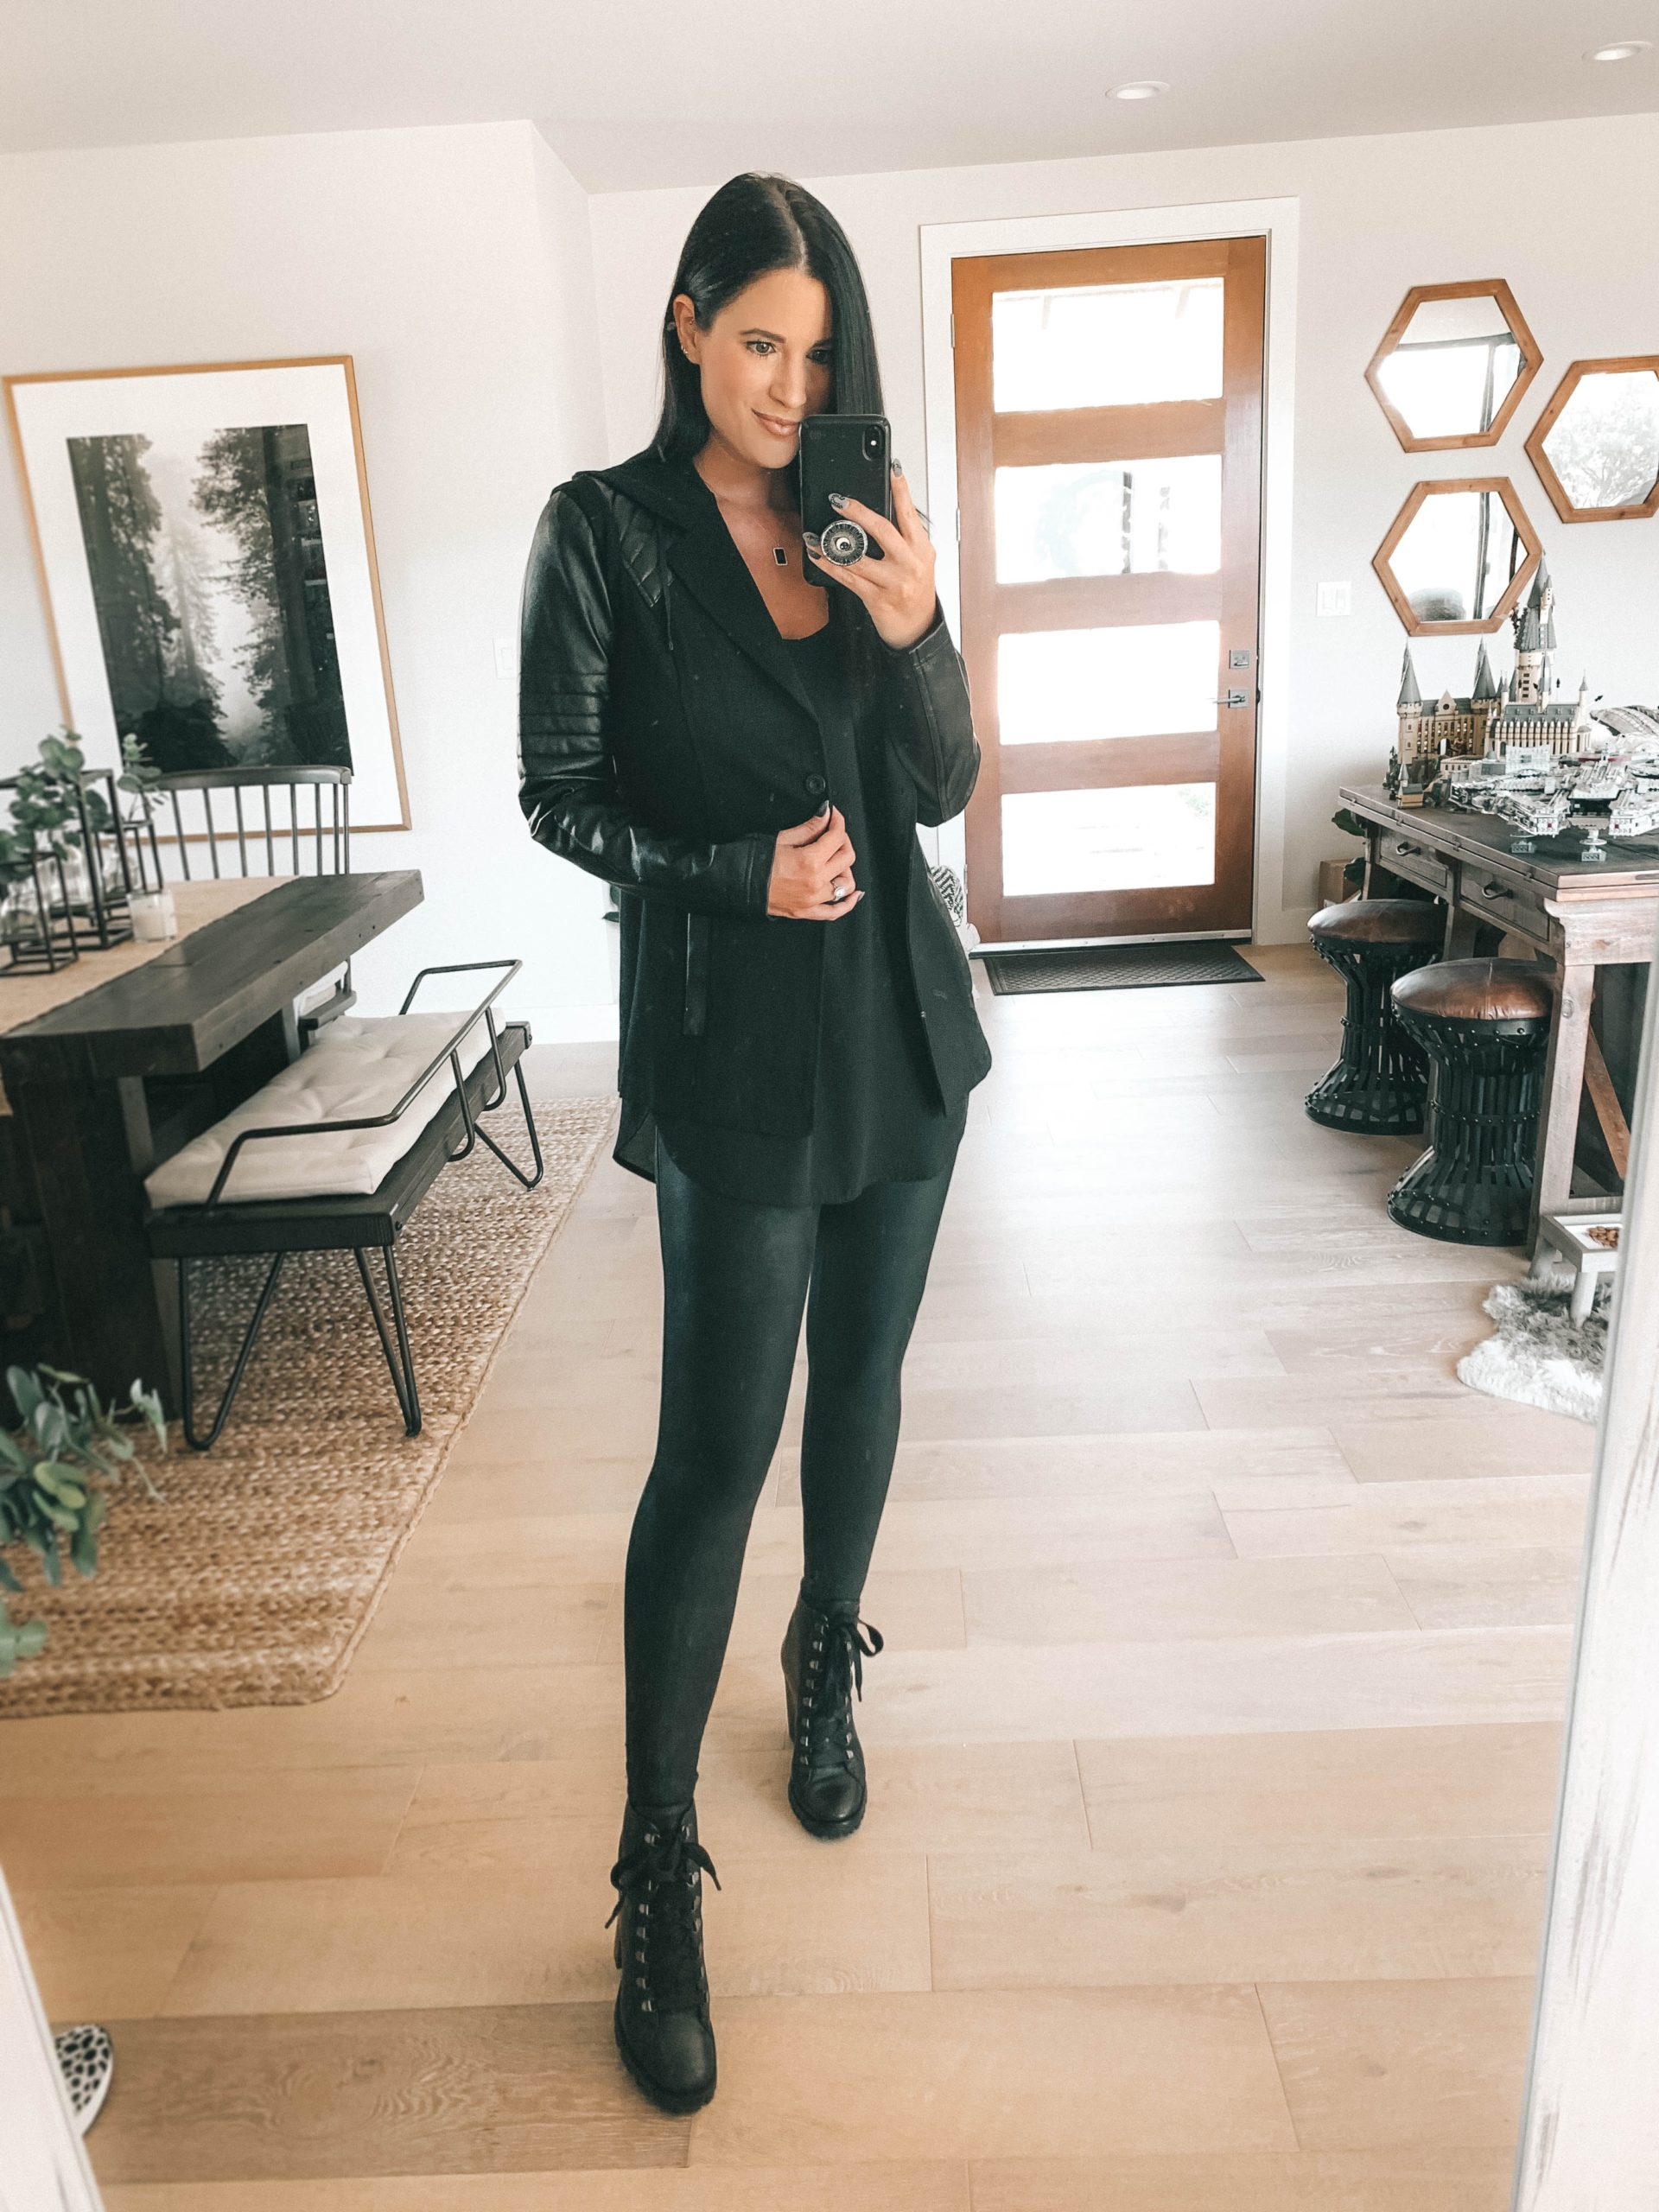 Nordstrom Anniversary Sale by popular Austin fashion blog, Dressed to Kill: image of a woman wearing a black jacket, black top, black faux leather leggings, and black combat boots.